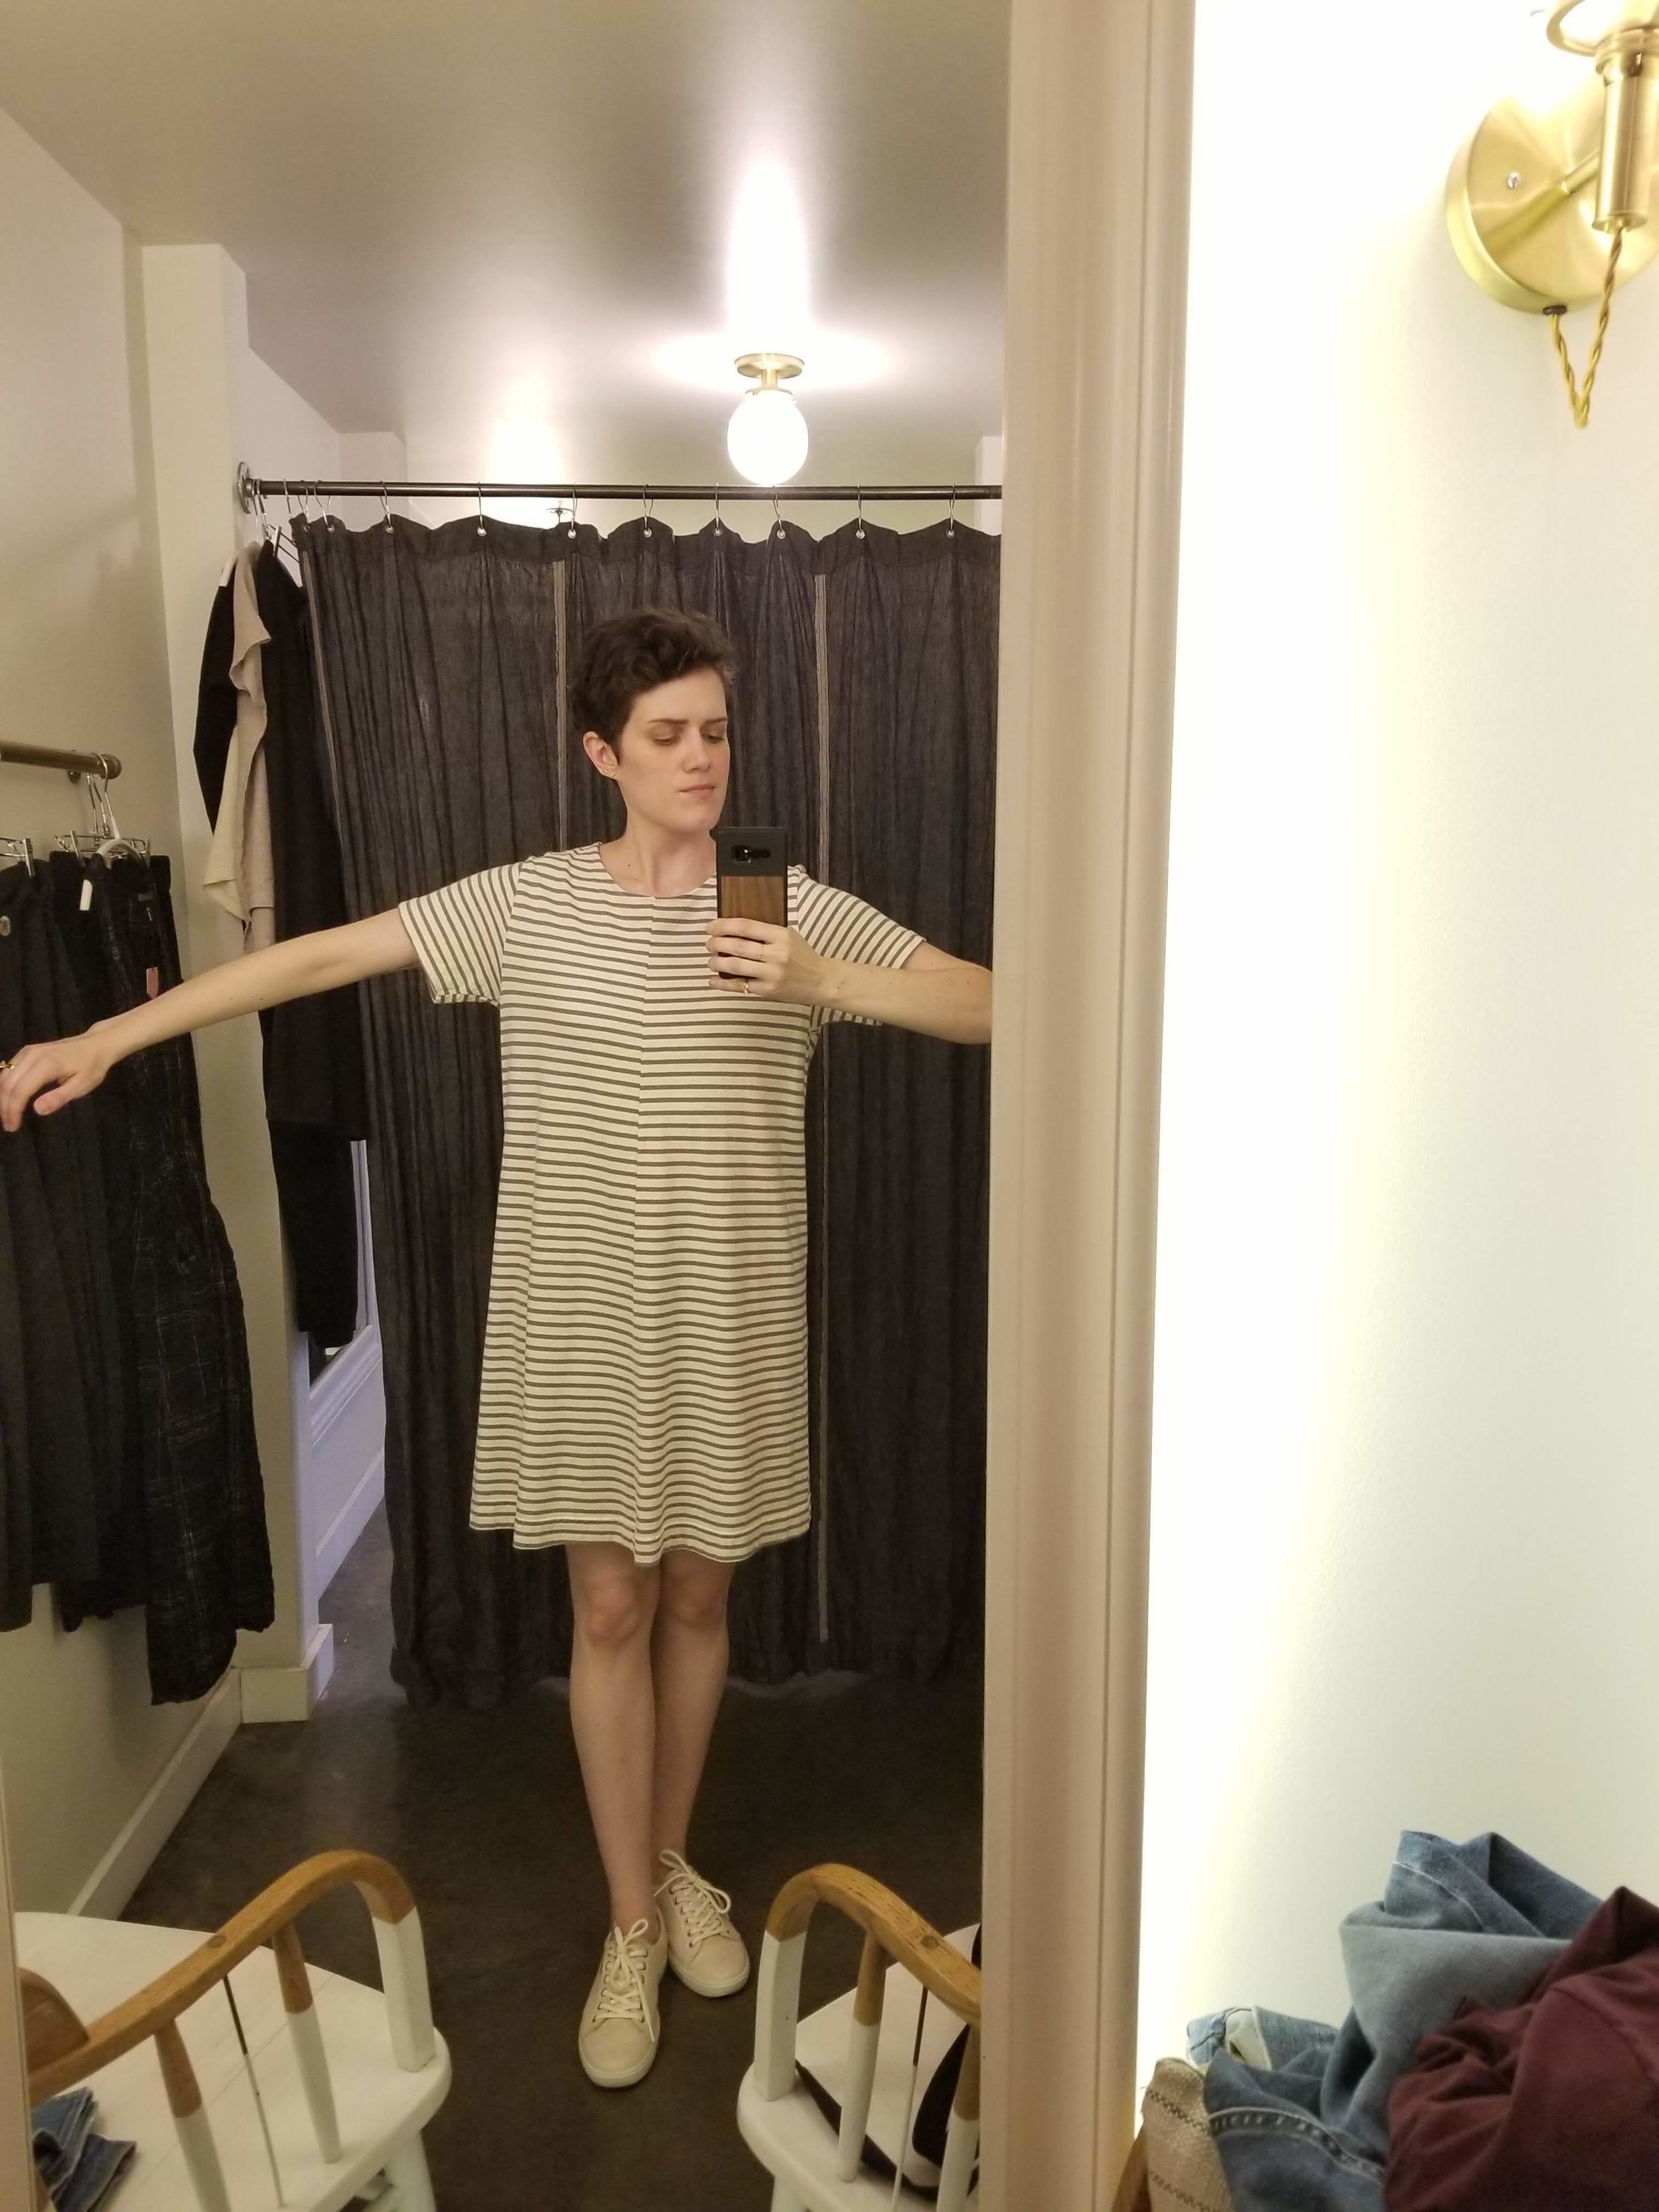 Tried on A LOT at Velouria, but this Jungmaven striped tee dress checked off an item from my wishlist — an easy, loose, office-appropriate everyday dress. Glad I know this brand now!